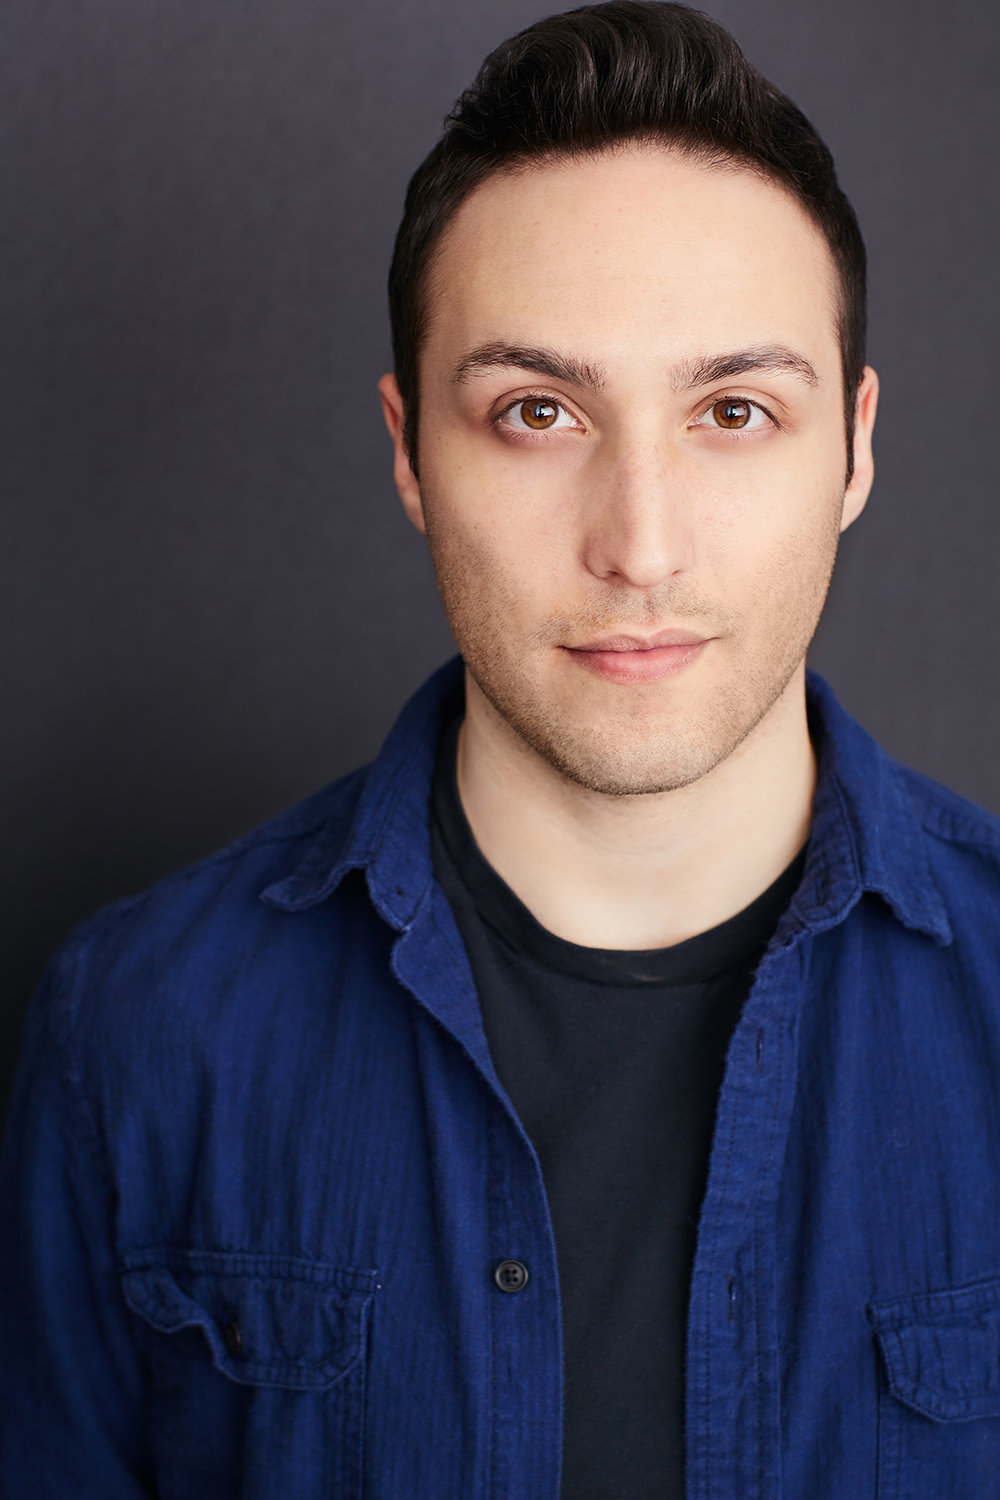 Sammy Ferber - New York-based actor, singer, and writer